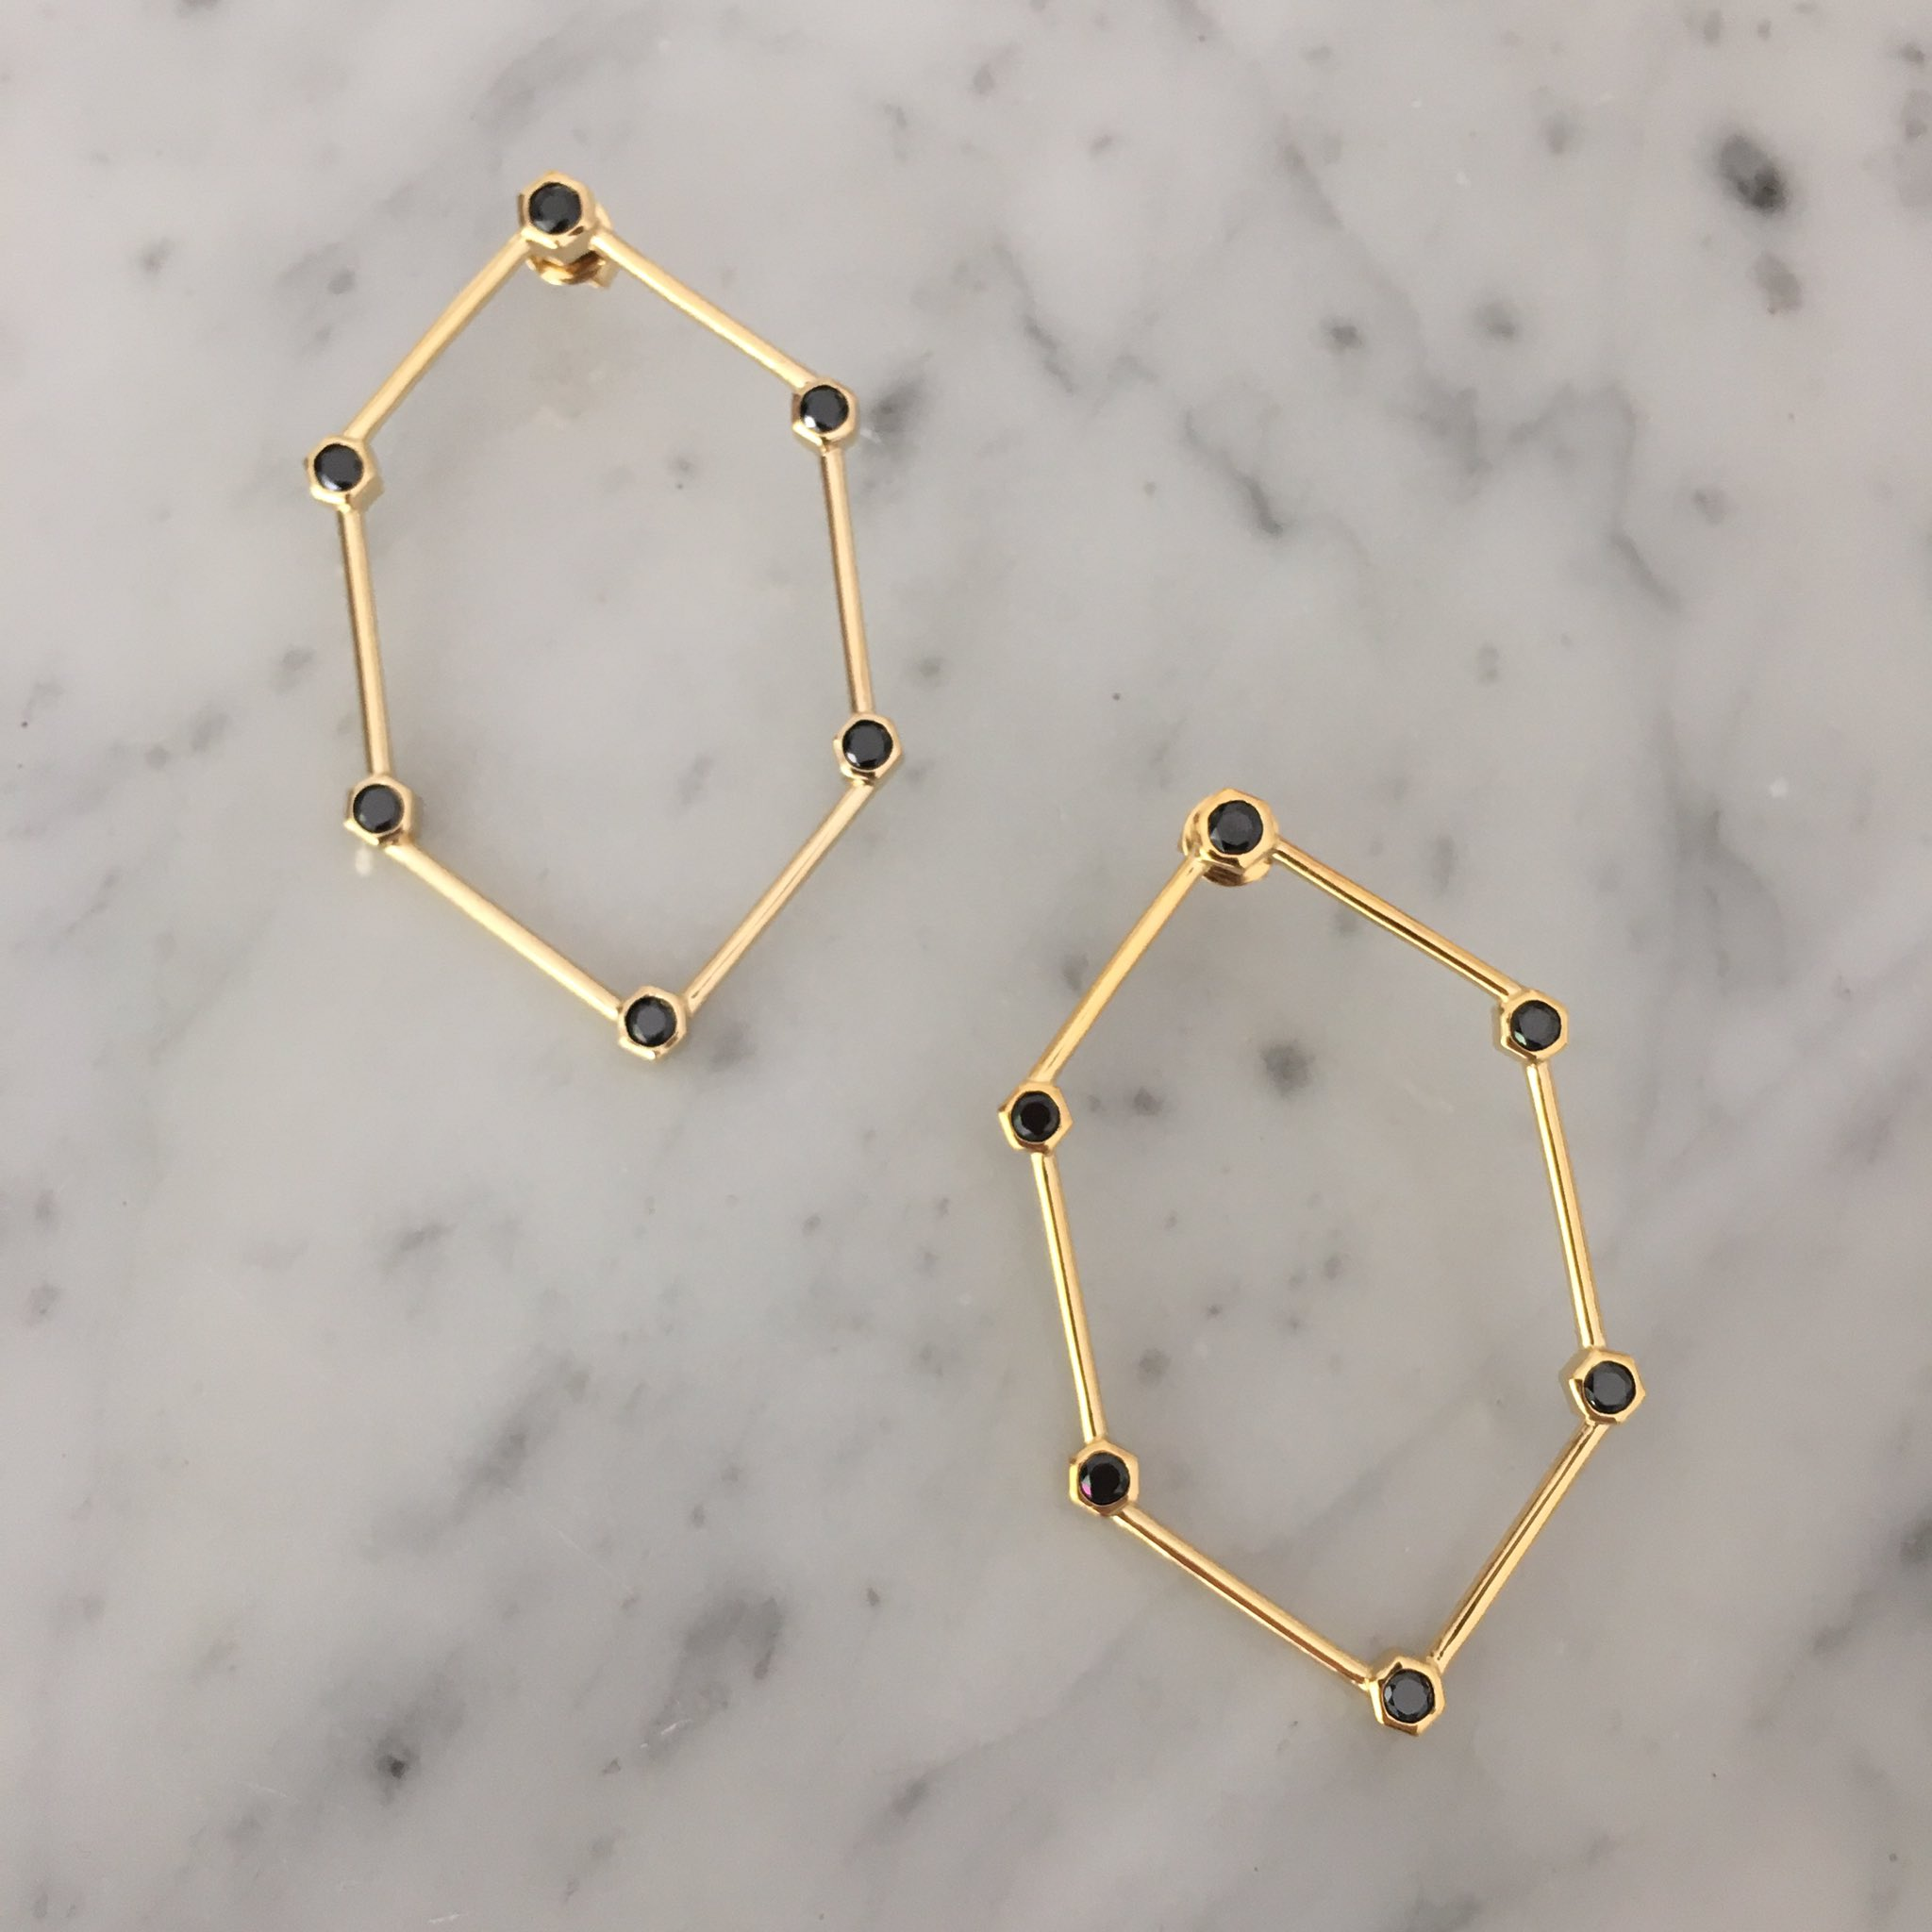 RT @louleriedublin: Totally in love with these earrings 😍 arrived in store @RosieFortescue jewellery https://t.co/WHKqck0u80